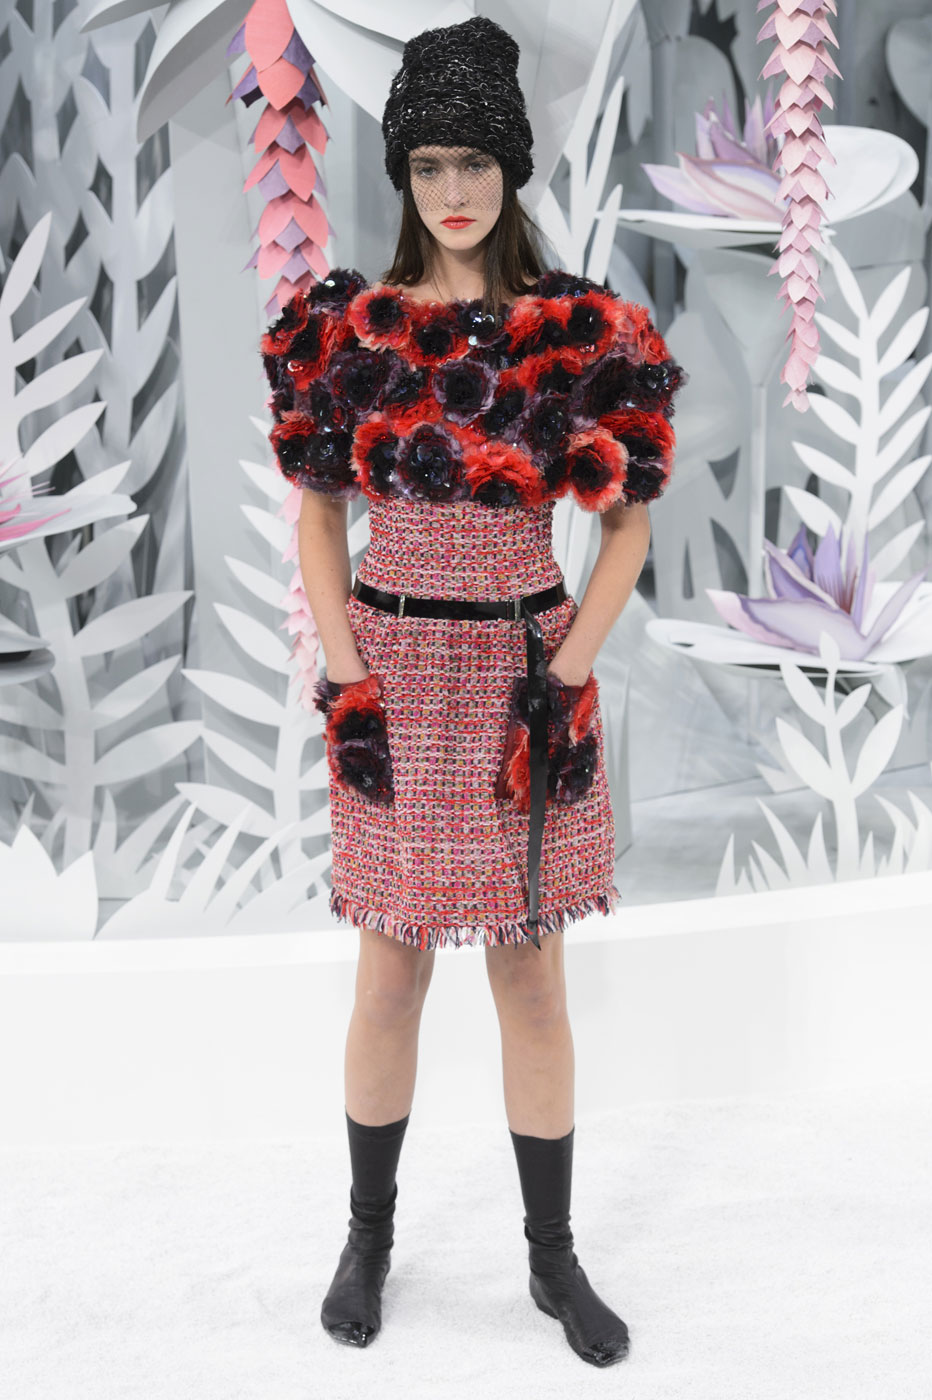 Chanel-fashion-runway-show-haute-couture-paris-spring-summer-2015-the-impression-086